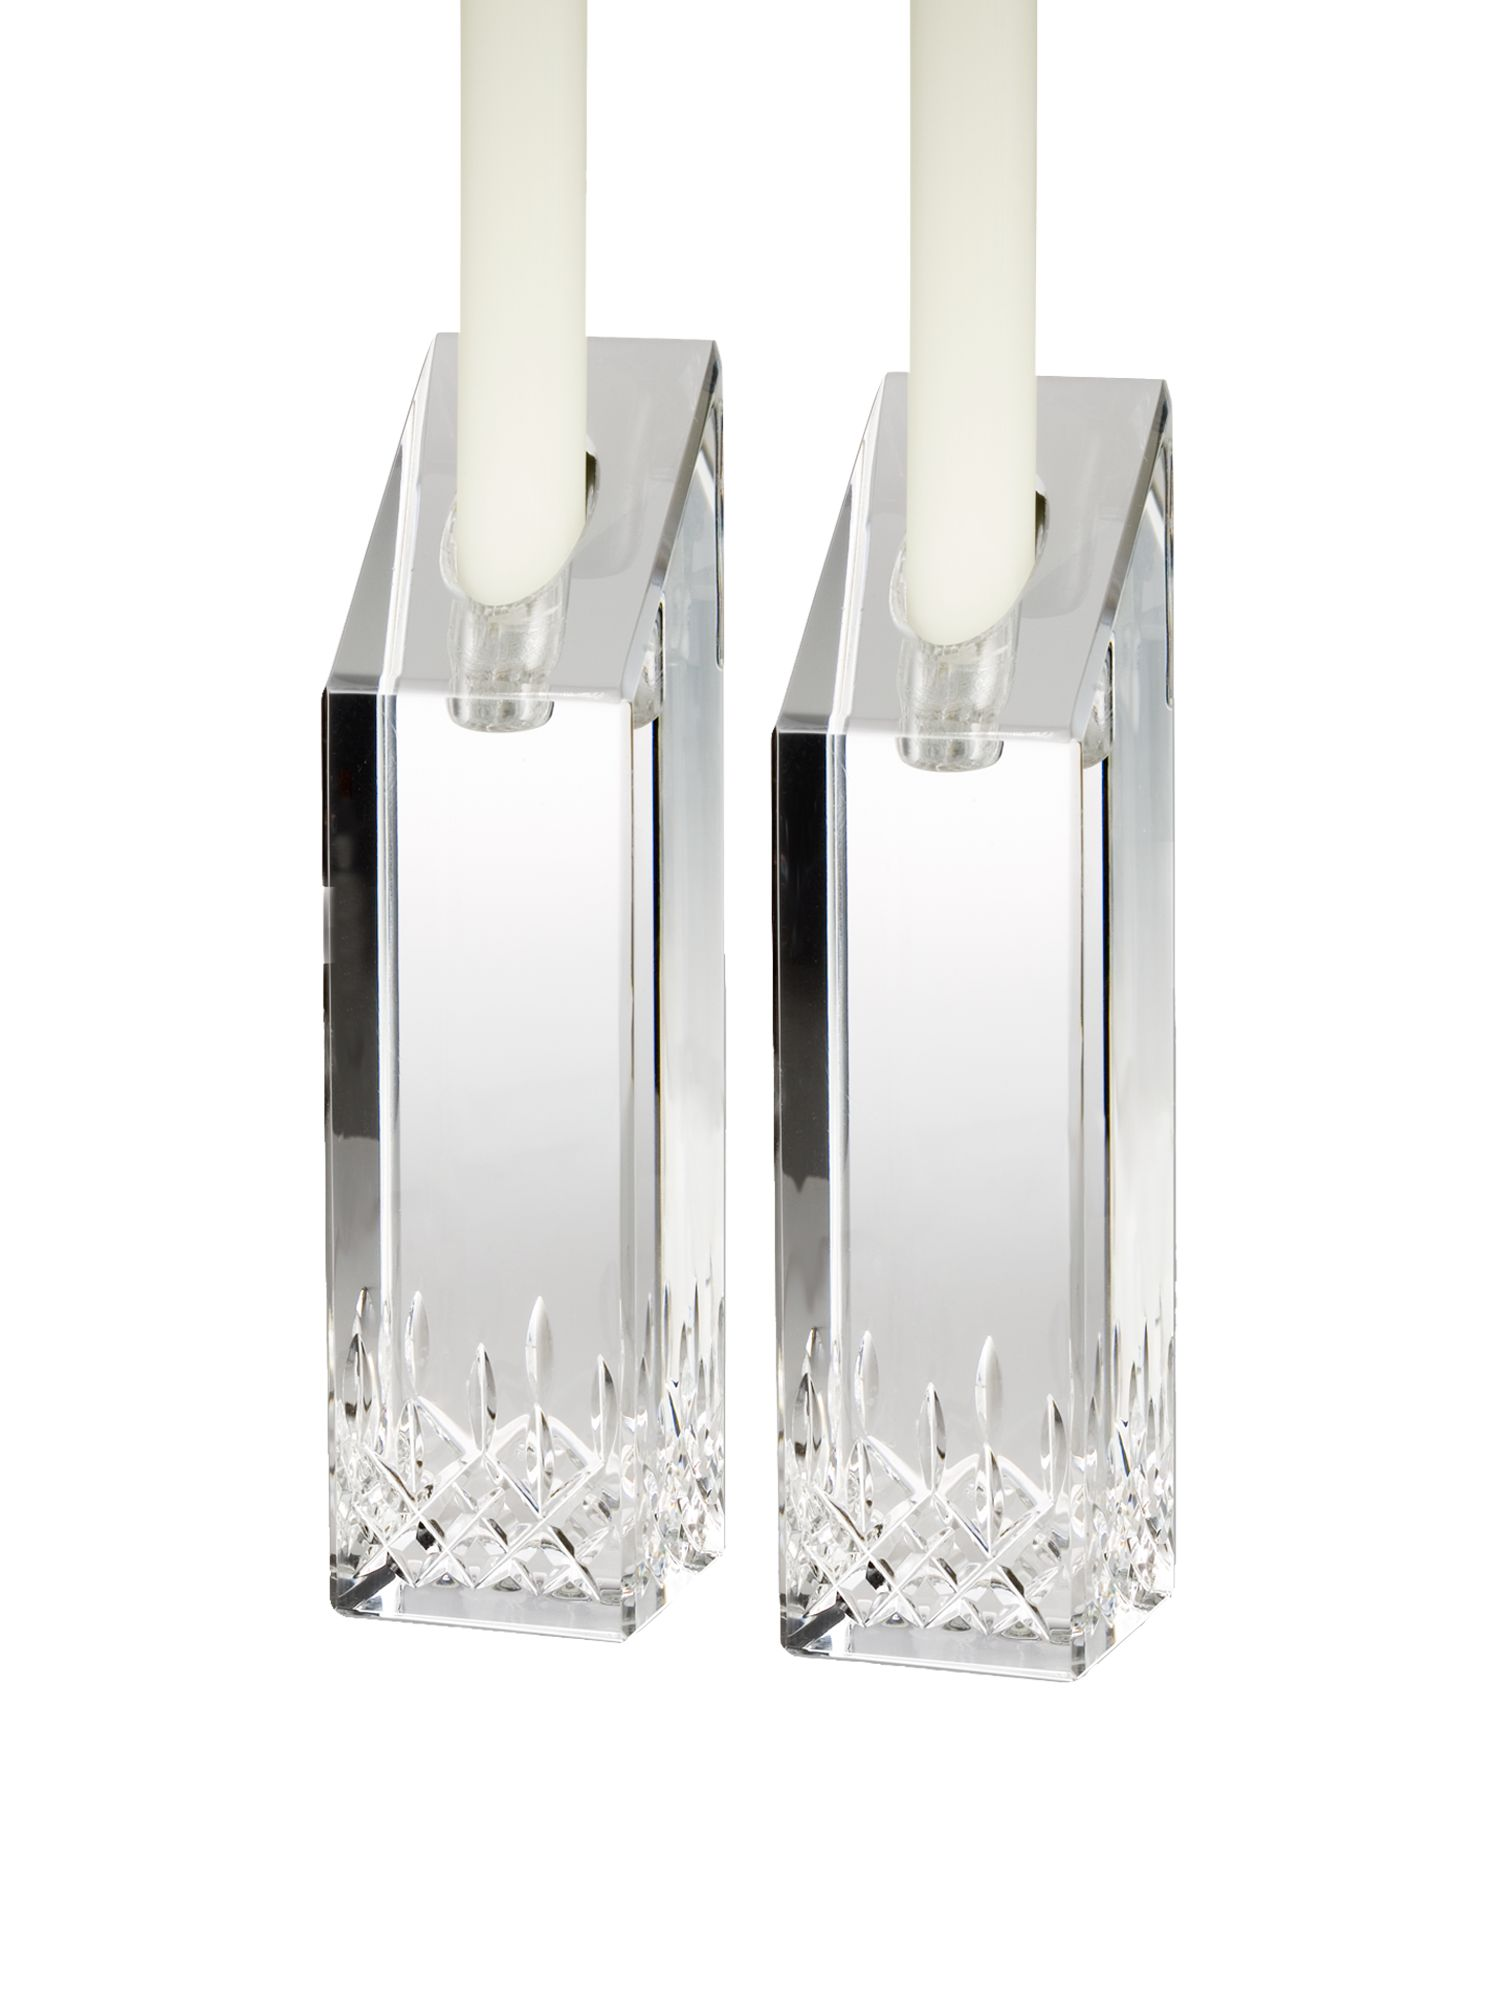 Lismore essence candlesticks 20cm, set of 2